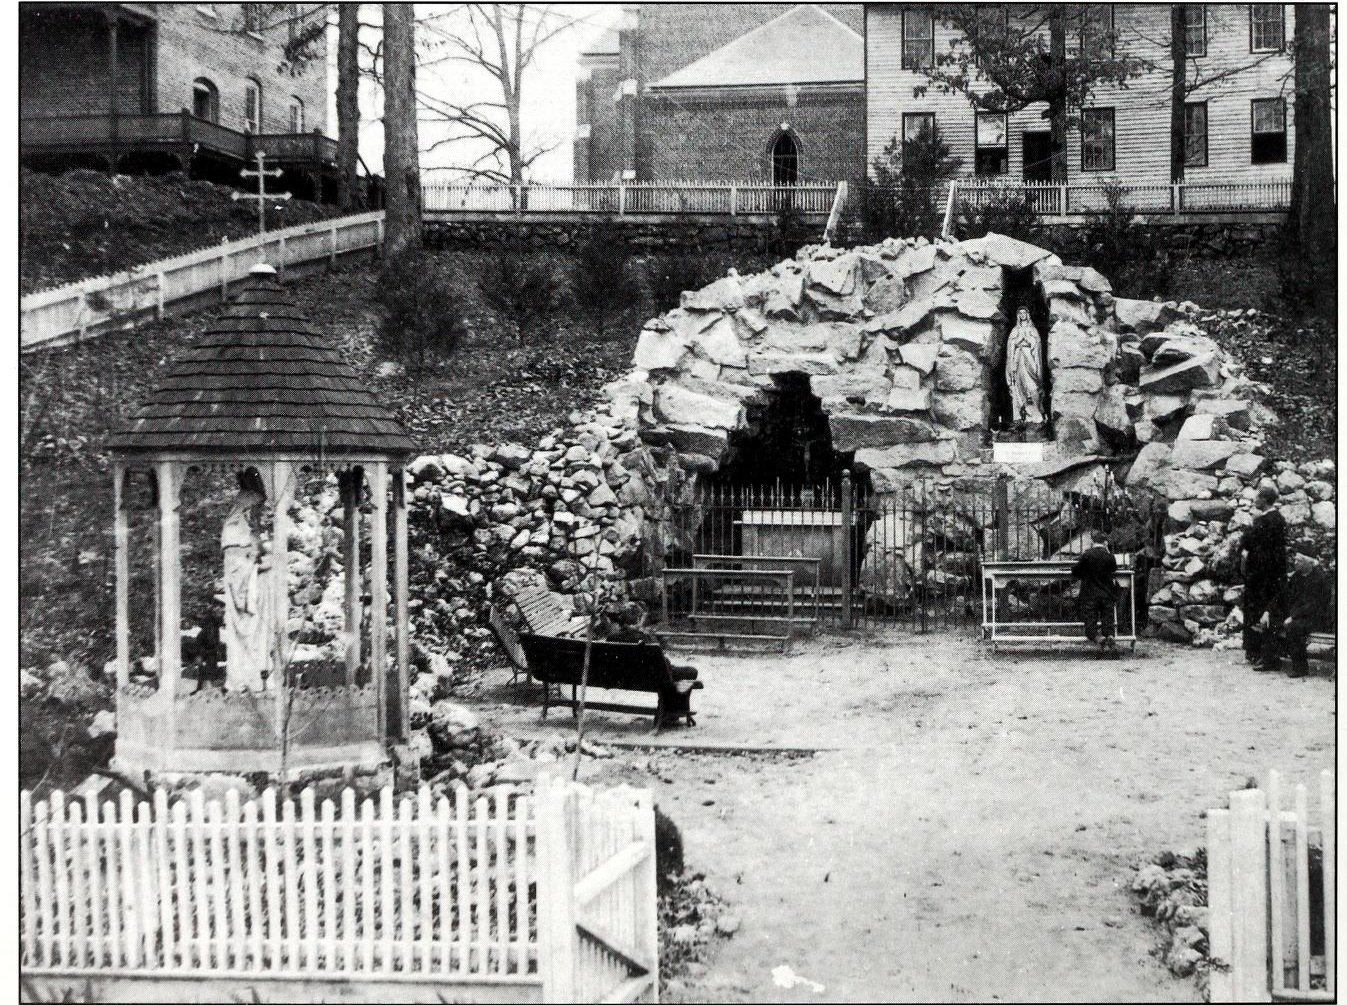 The Our Lady of Lourdes Grotto in 1894, three years after its creation.